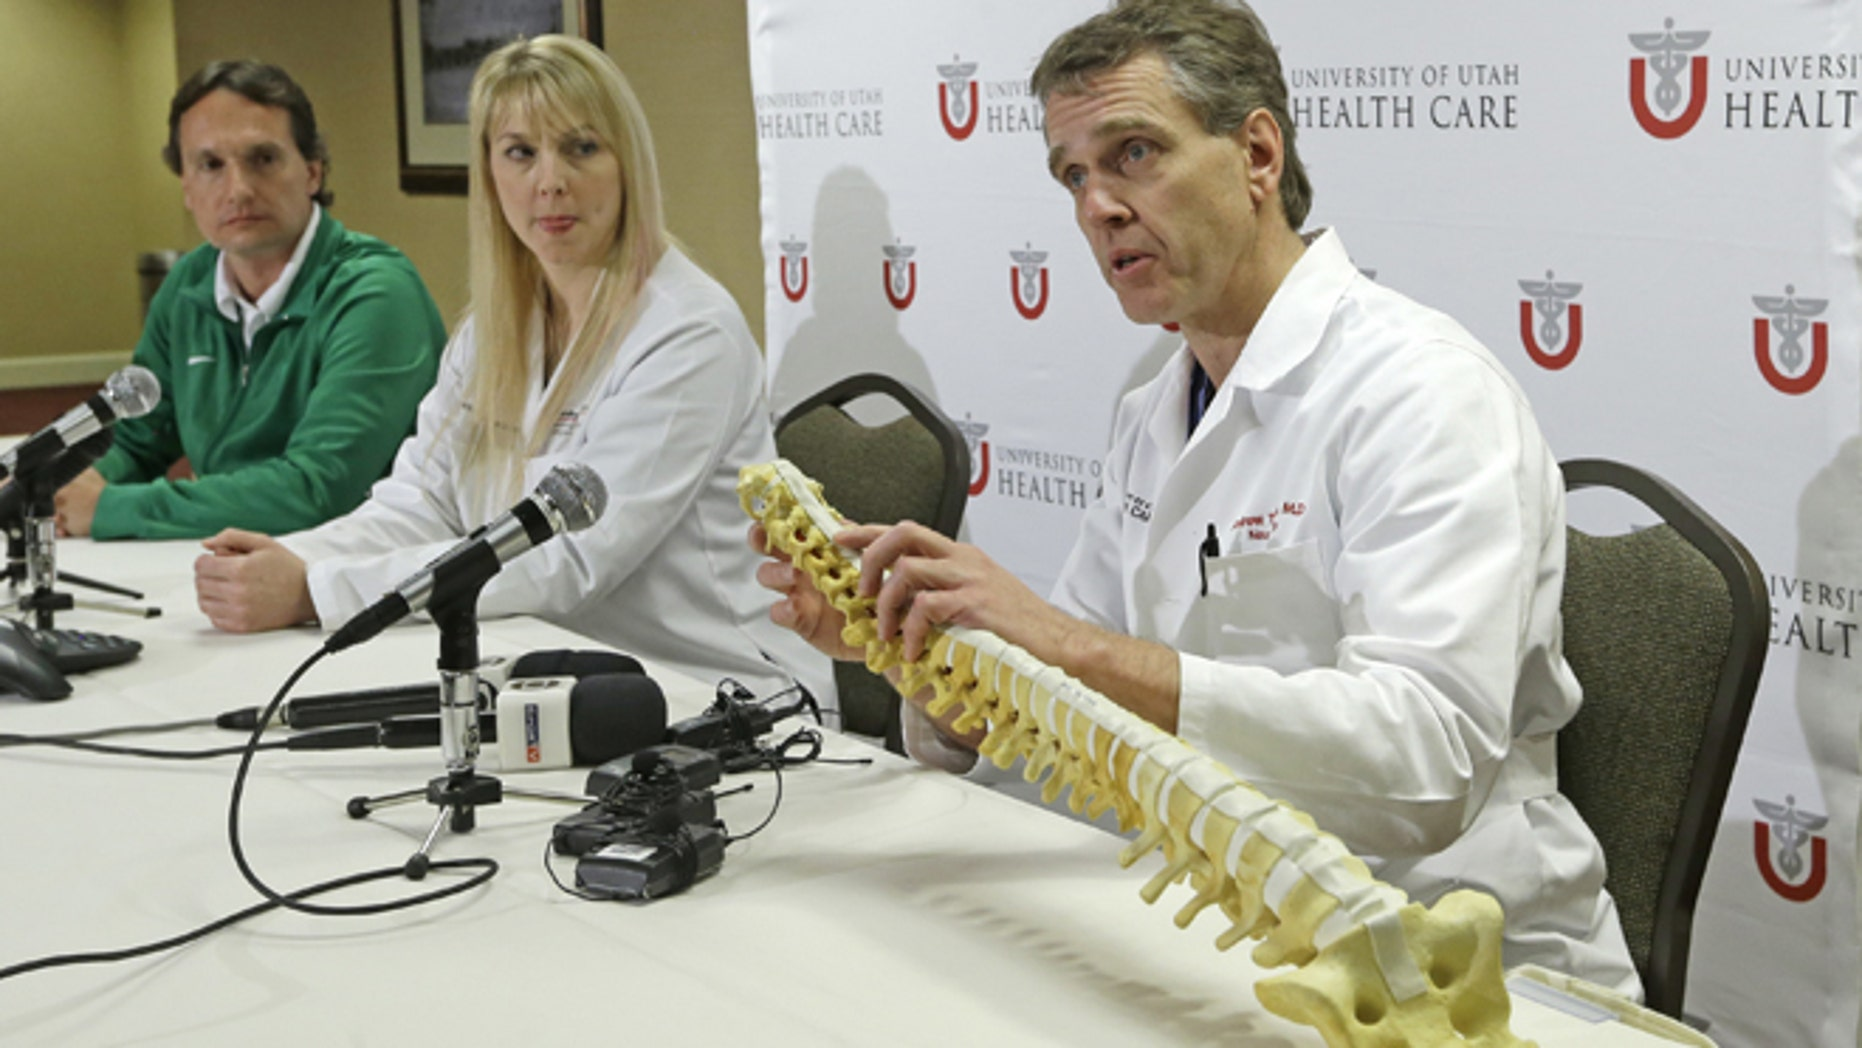 University of Utah neurosurgeon Andrew Dailey, right, describes the injury of Brazilian gymnast Lais Souza, as Brazilian team doctor Antonio Marttos, left, and Dr. Holly Ledyard, member of the University of Utah Neuro Critical Care Unit, looks on, during a news conference at the University of Utah Thursday, Jan. 30, 2014, in Salt Lake City. Doctors say the 25-year-old gymnast, expected to compete in freestyle skiing at the Sochi Olympics, is unable to move, talk or breathe on her own after an accident this week while skiing in Utah.  She was injured Monday when she hit a tree while skiing in Park City.(AP Photo)